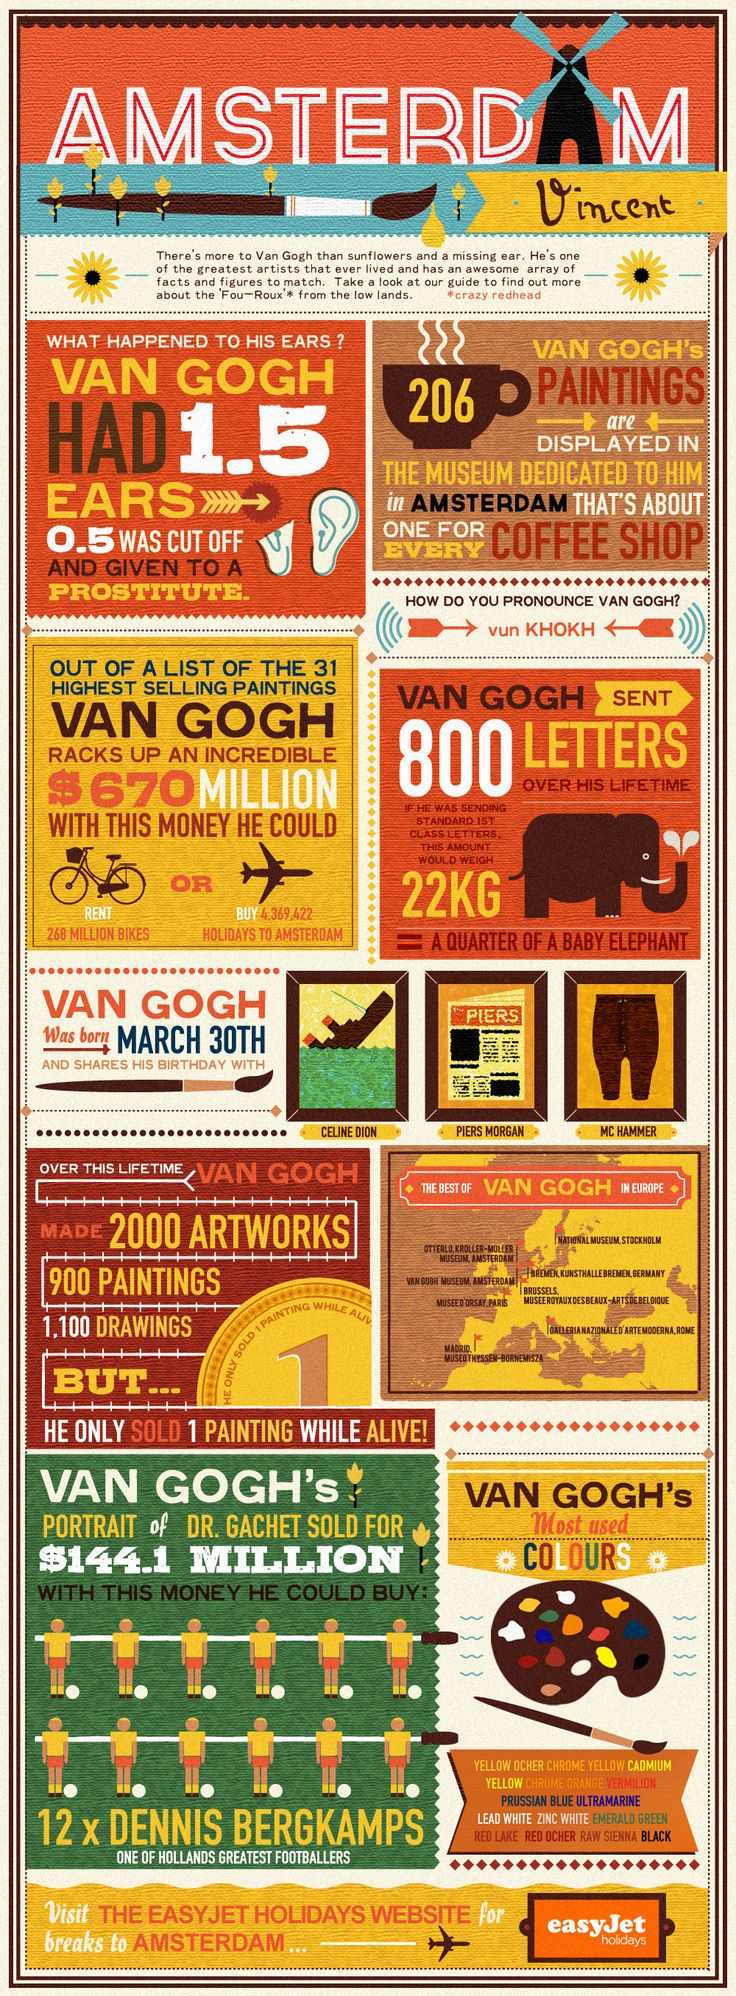 van_gogh_v3_b  http://www.infographicsarchive.com/people/the-life-and-works-of-vincent-van-gogh/#